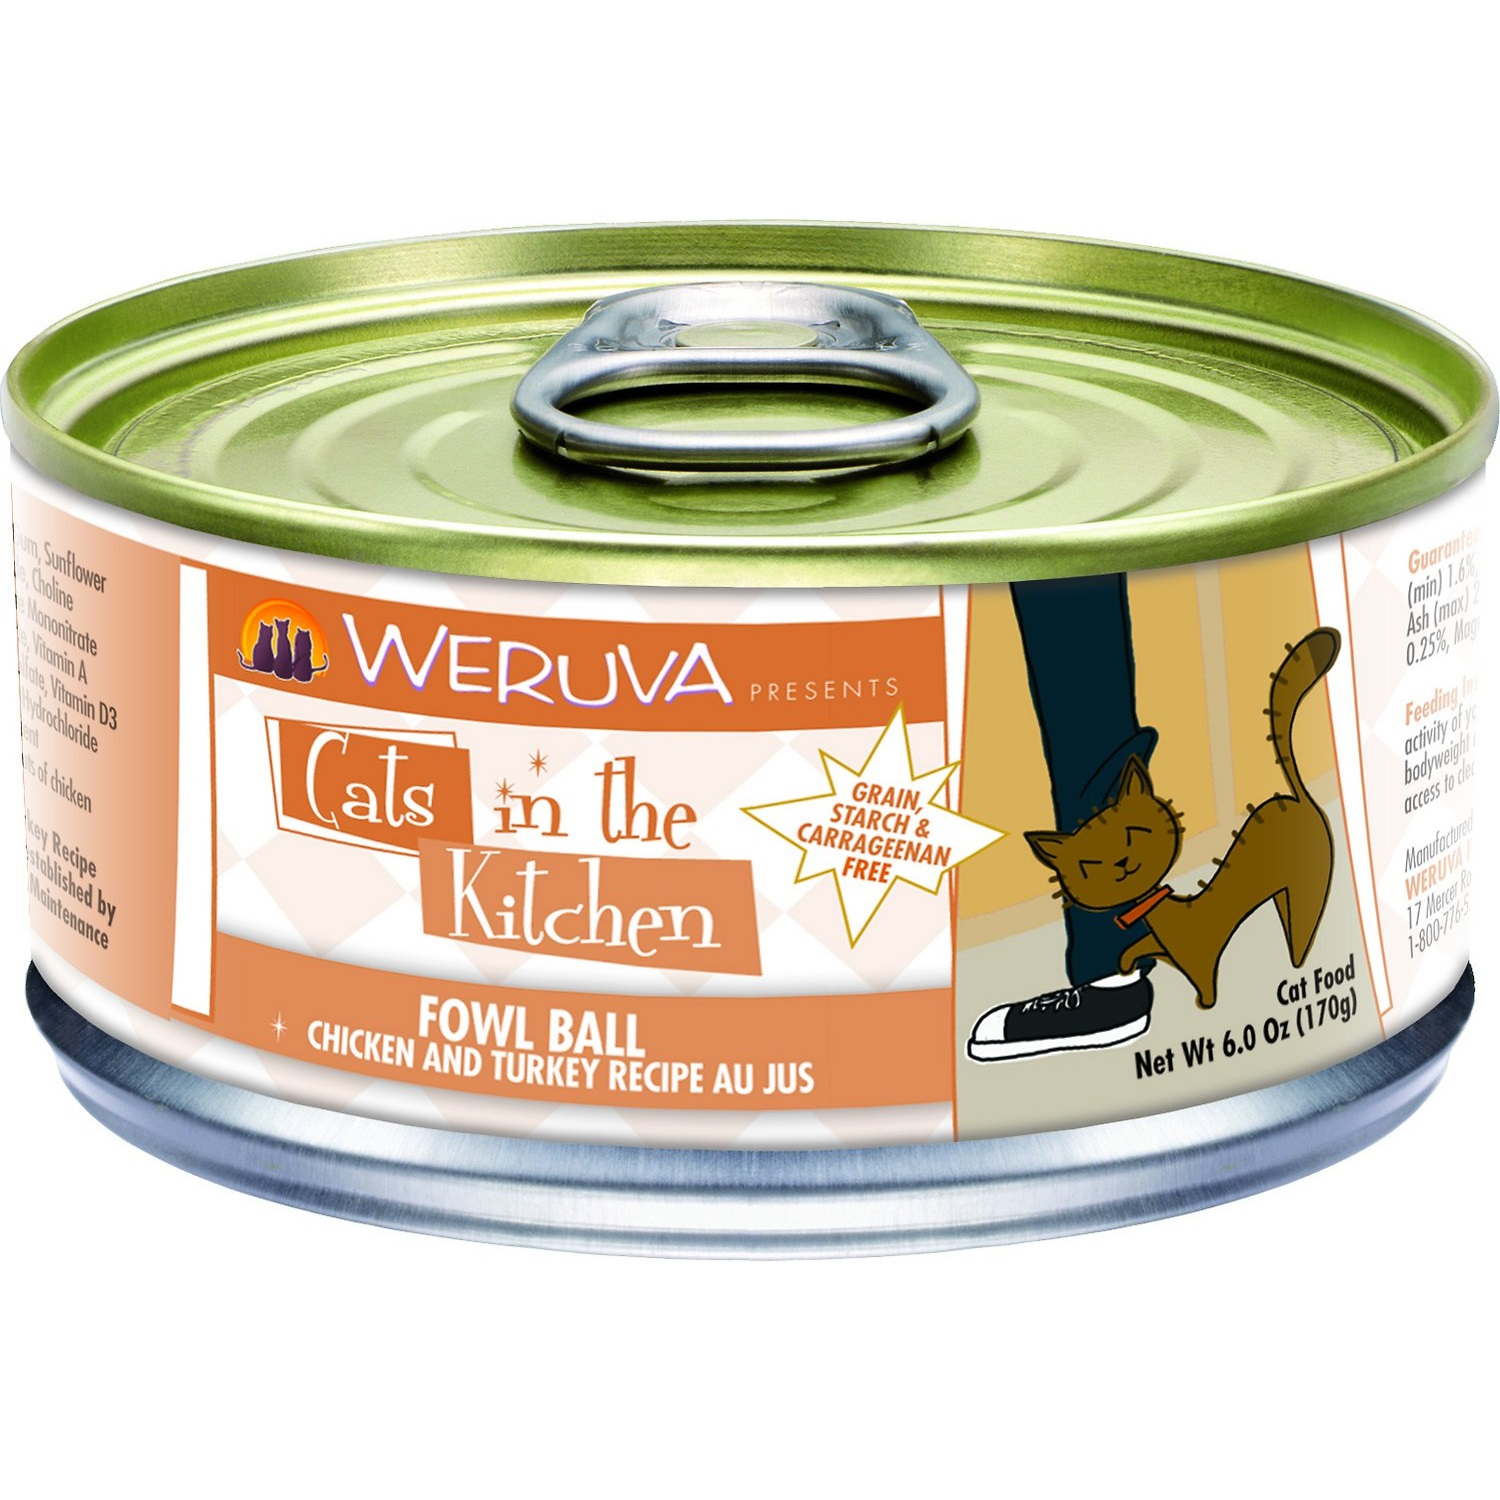 Weruva Cats in the Kitchen 'Fowl Ball' Chicken & Turkey Au Jus Canned Cat Food 6z, 24